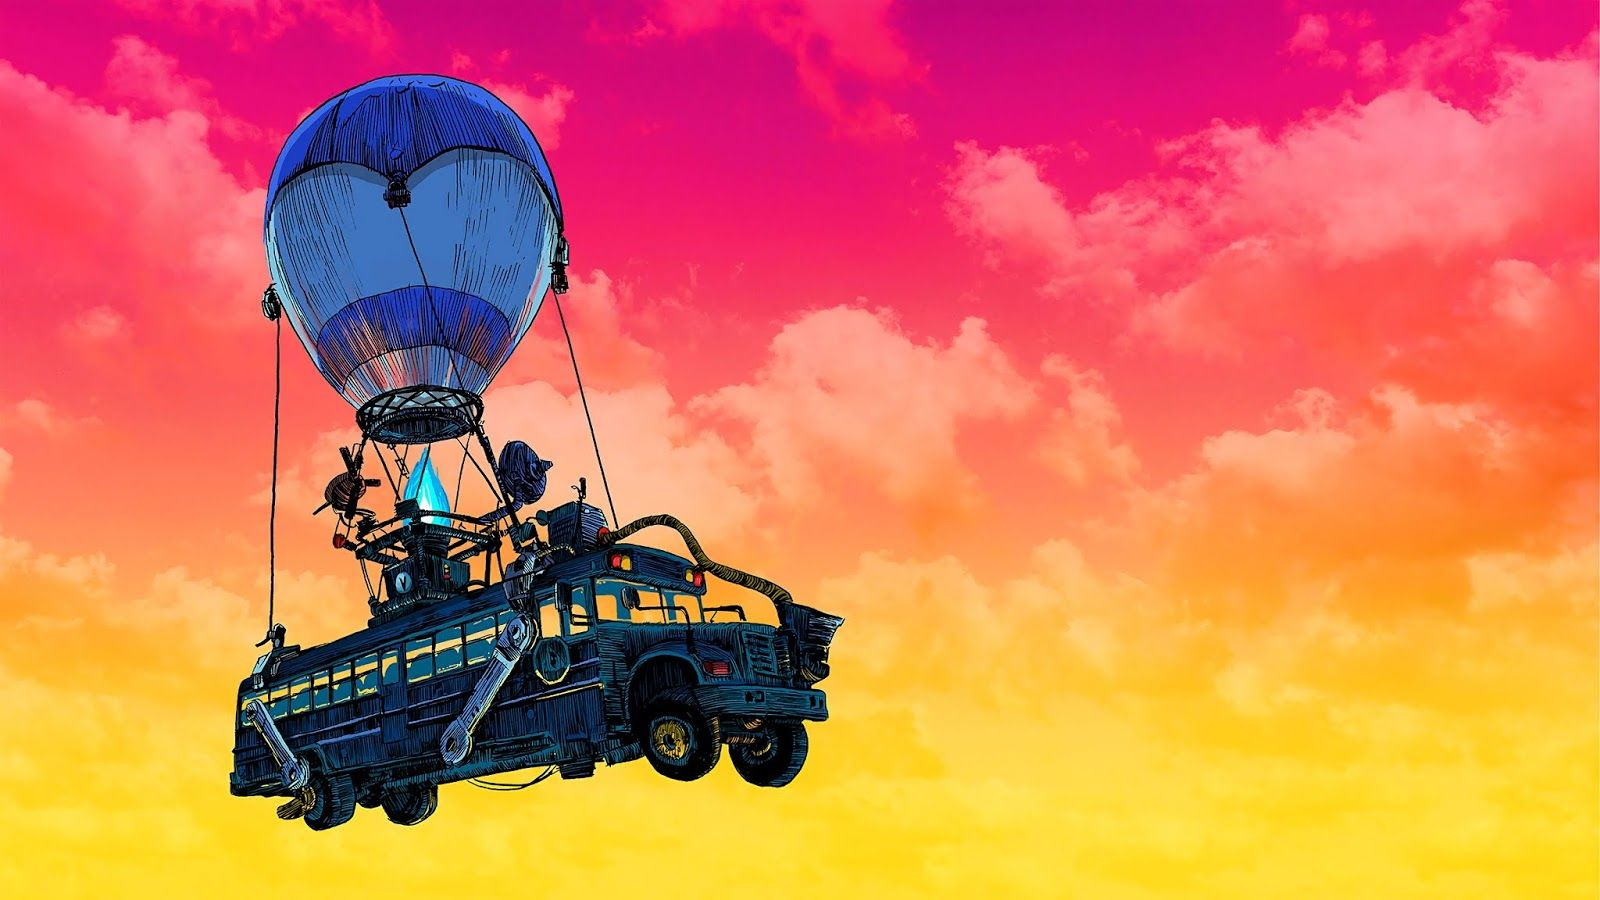 Fortnite Bus Wallpaper In 4k In 2020 With Images Bus Art